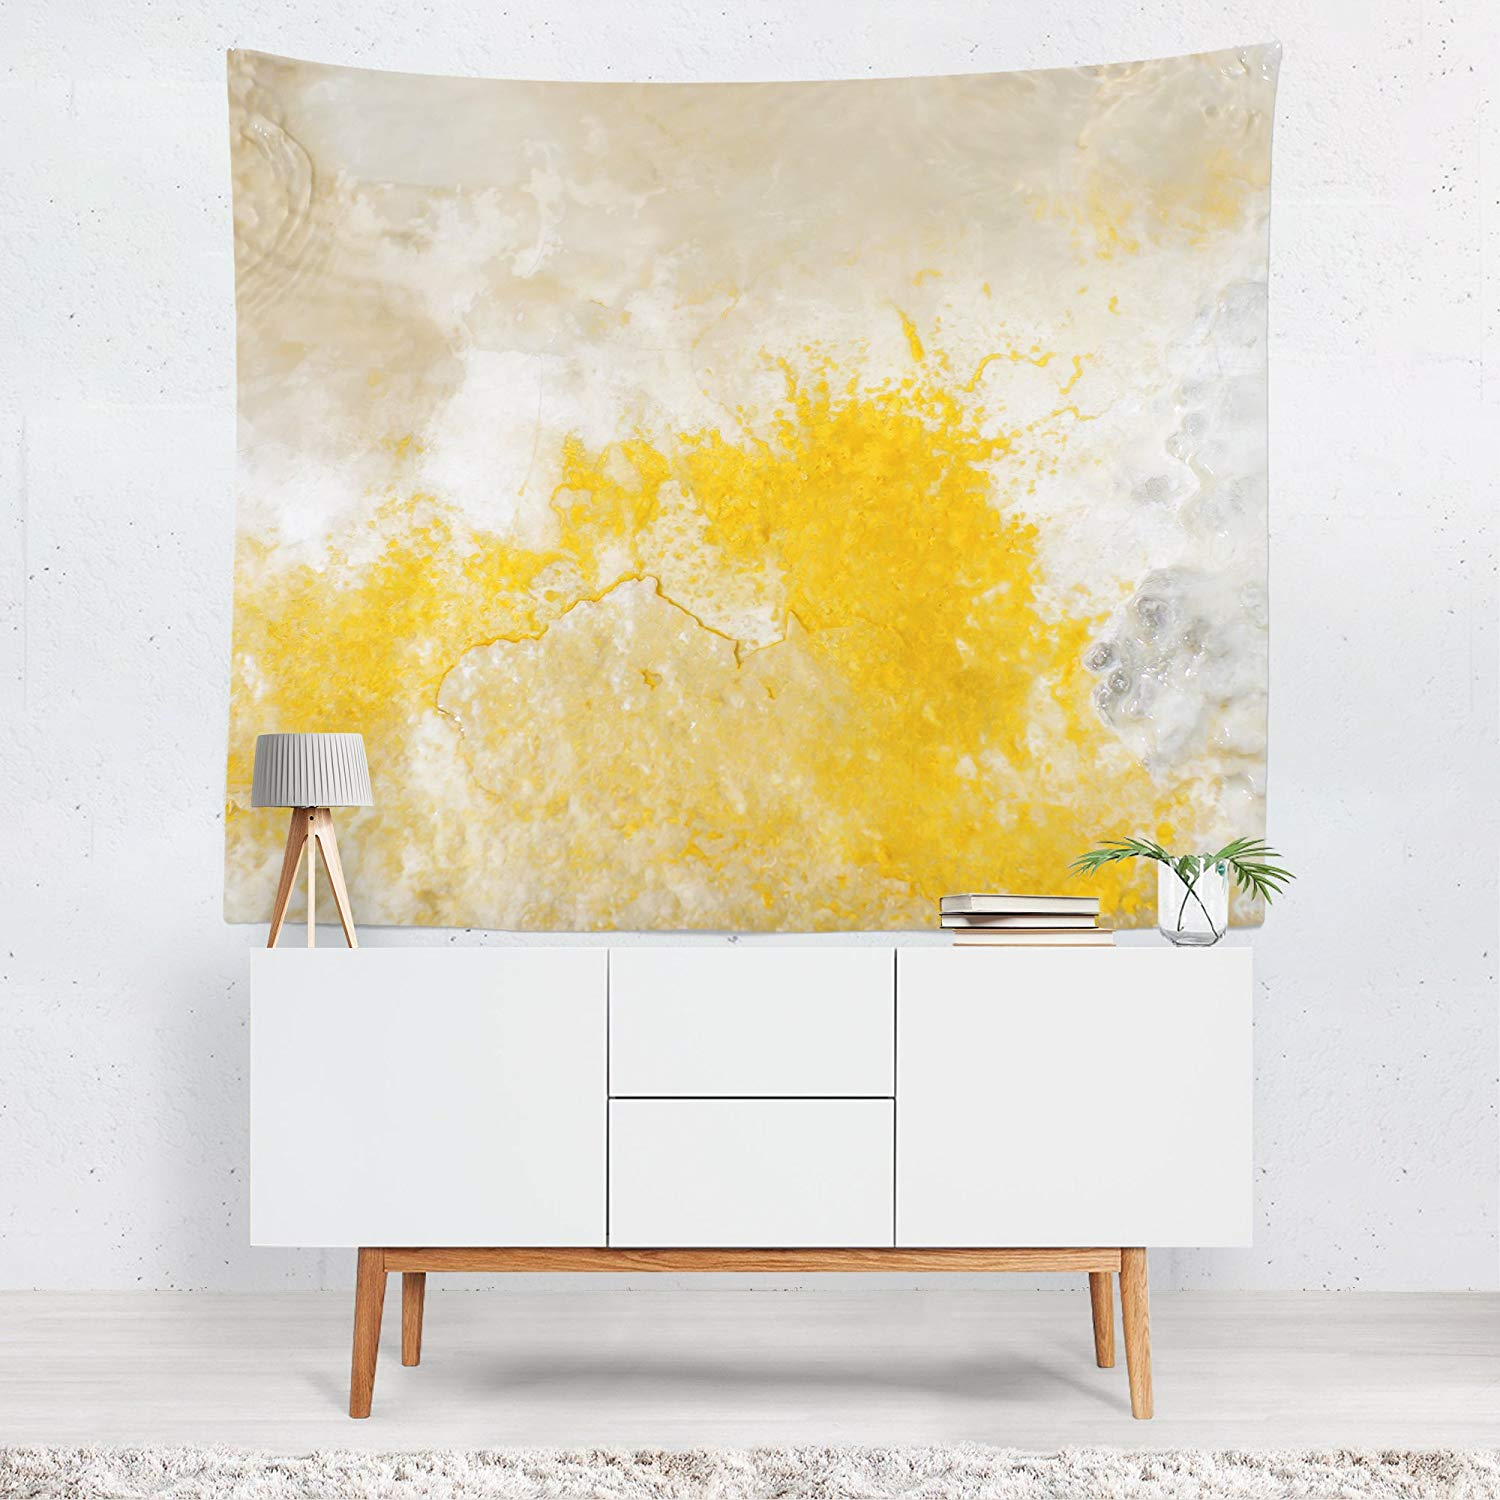 Abstract Art Wall Tapestry, Modern Home Wall Hanging, Nature Texture, Yellowstone Geyser Art, Large Rock Texture, Marble, Stone Textures